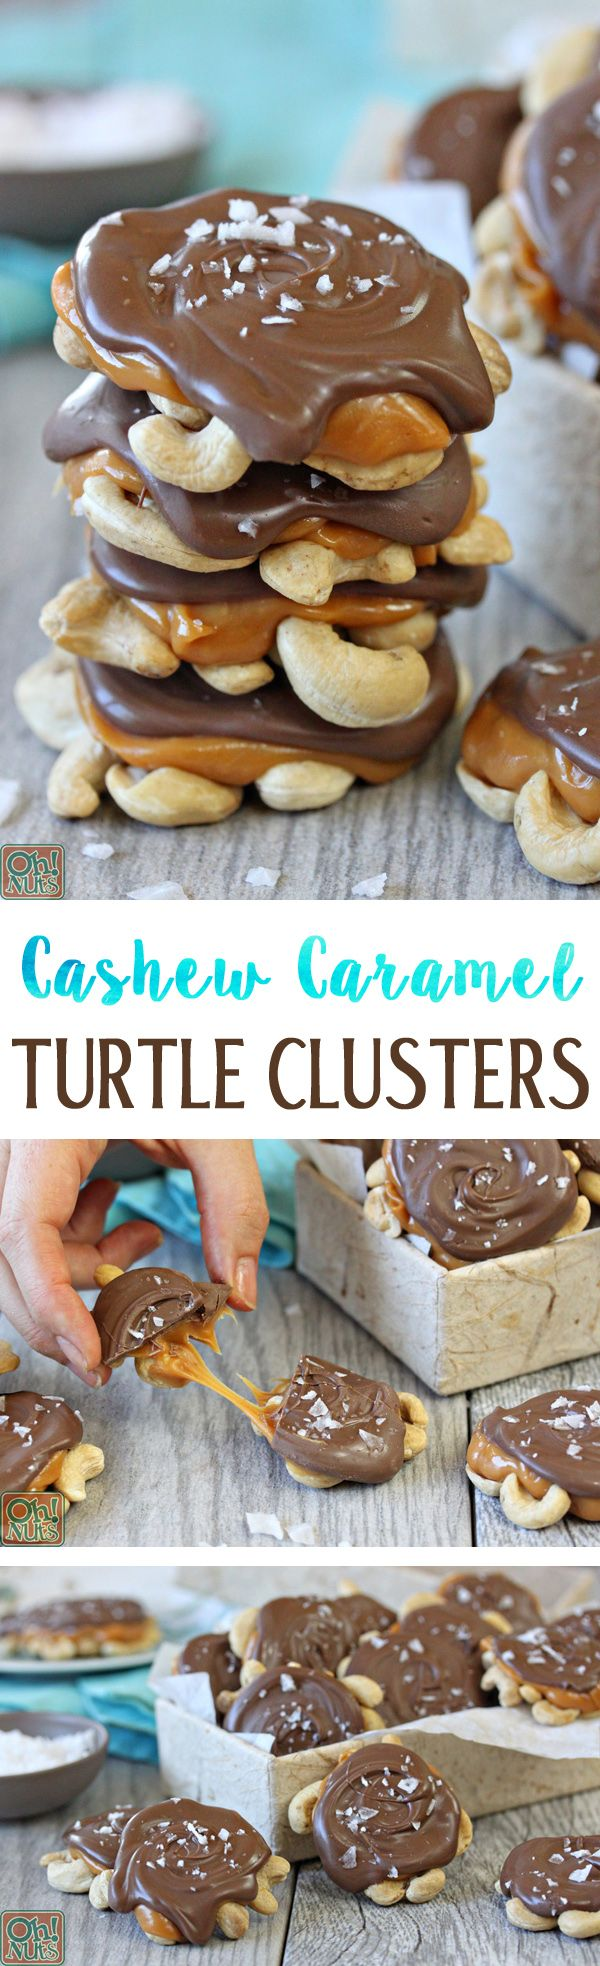 Cashew Caramel Turtle Clusters - give regular turtles a twist by using cashews instead!